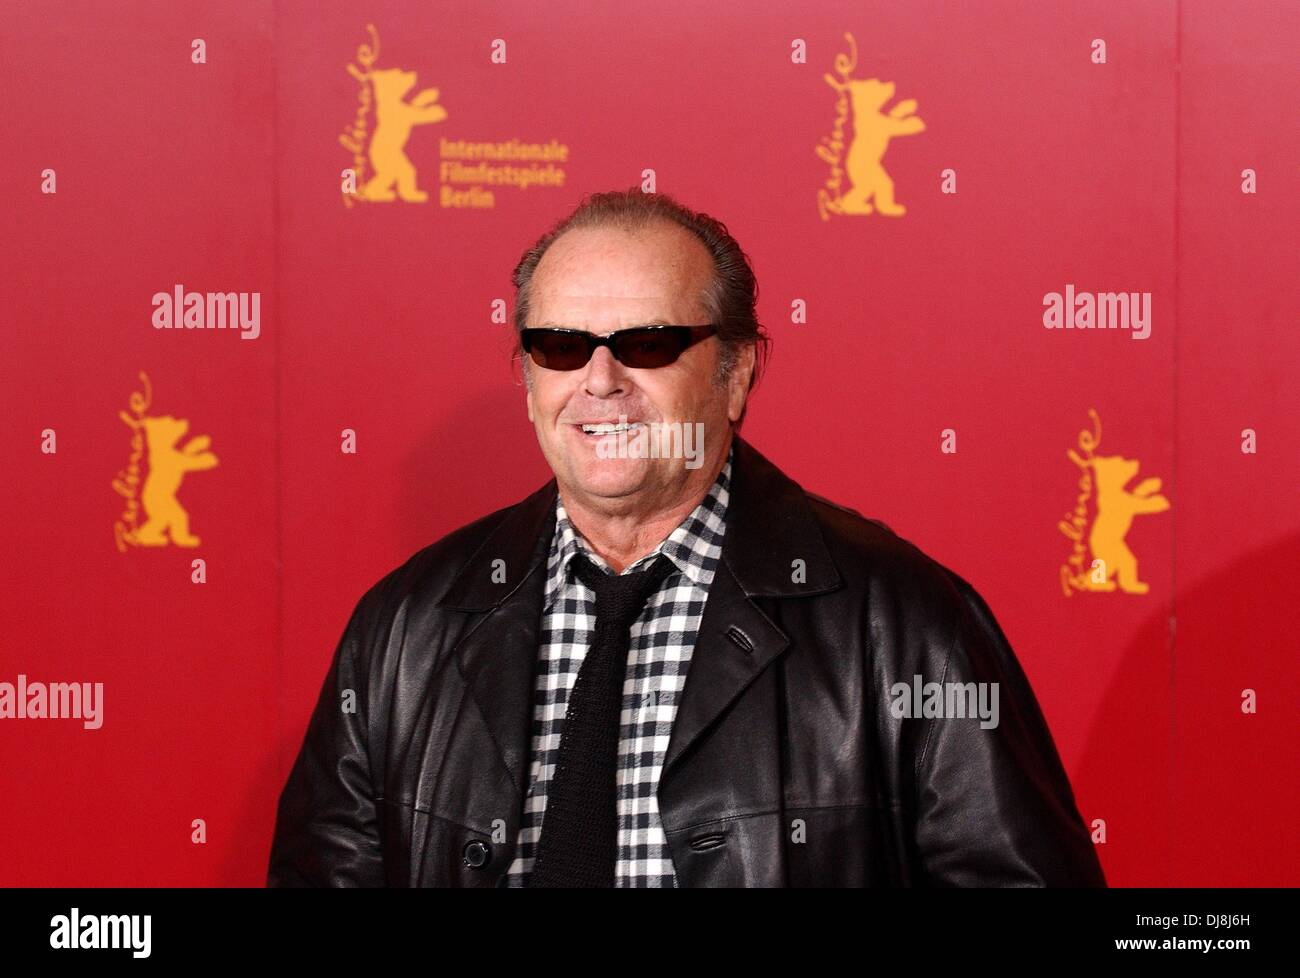 Jack Nicholson at the photocall of 'Something's Gotta Give' during the Berlinale 2004. - Stock Image